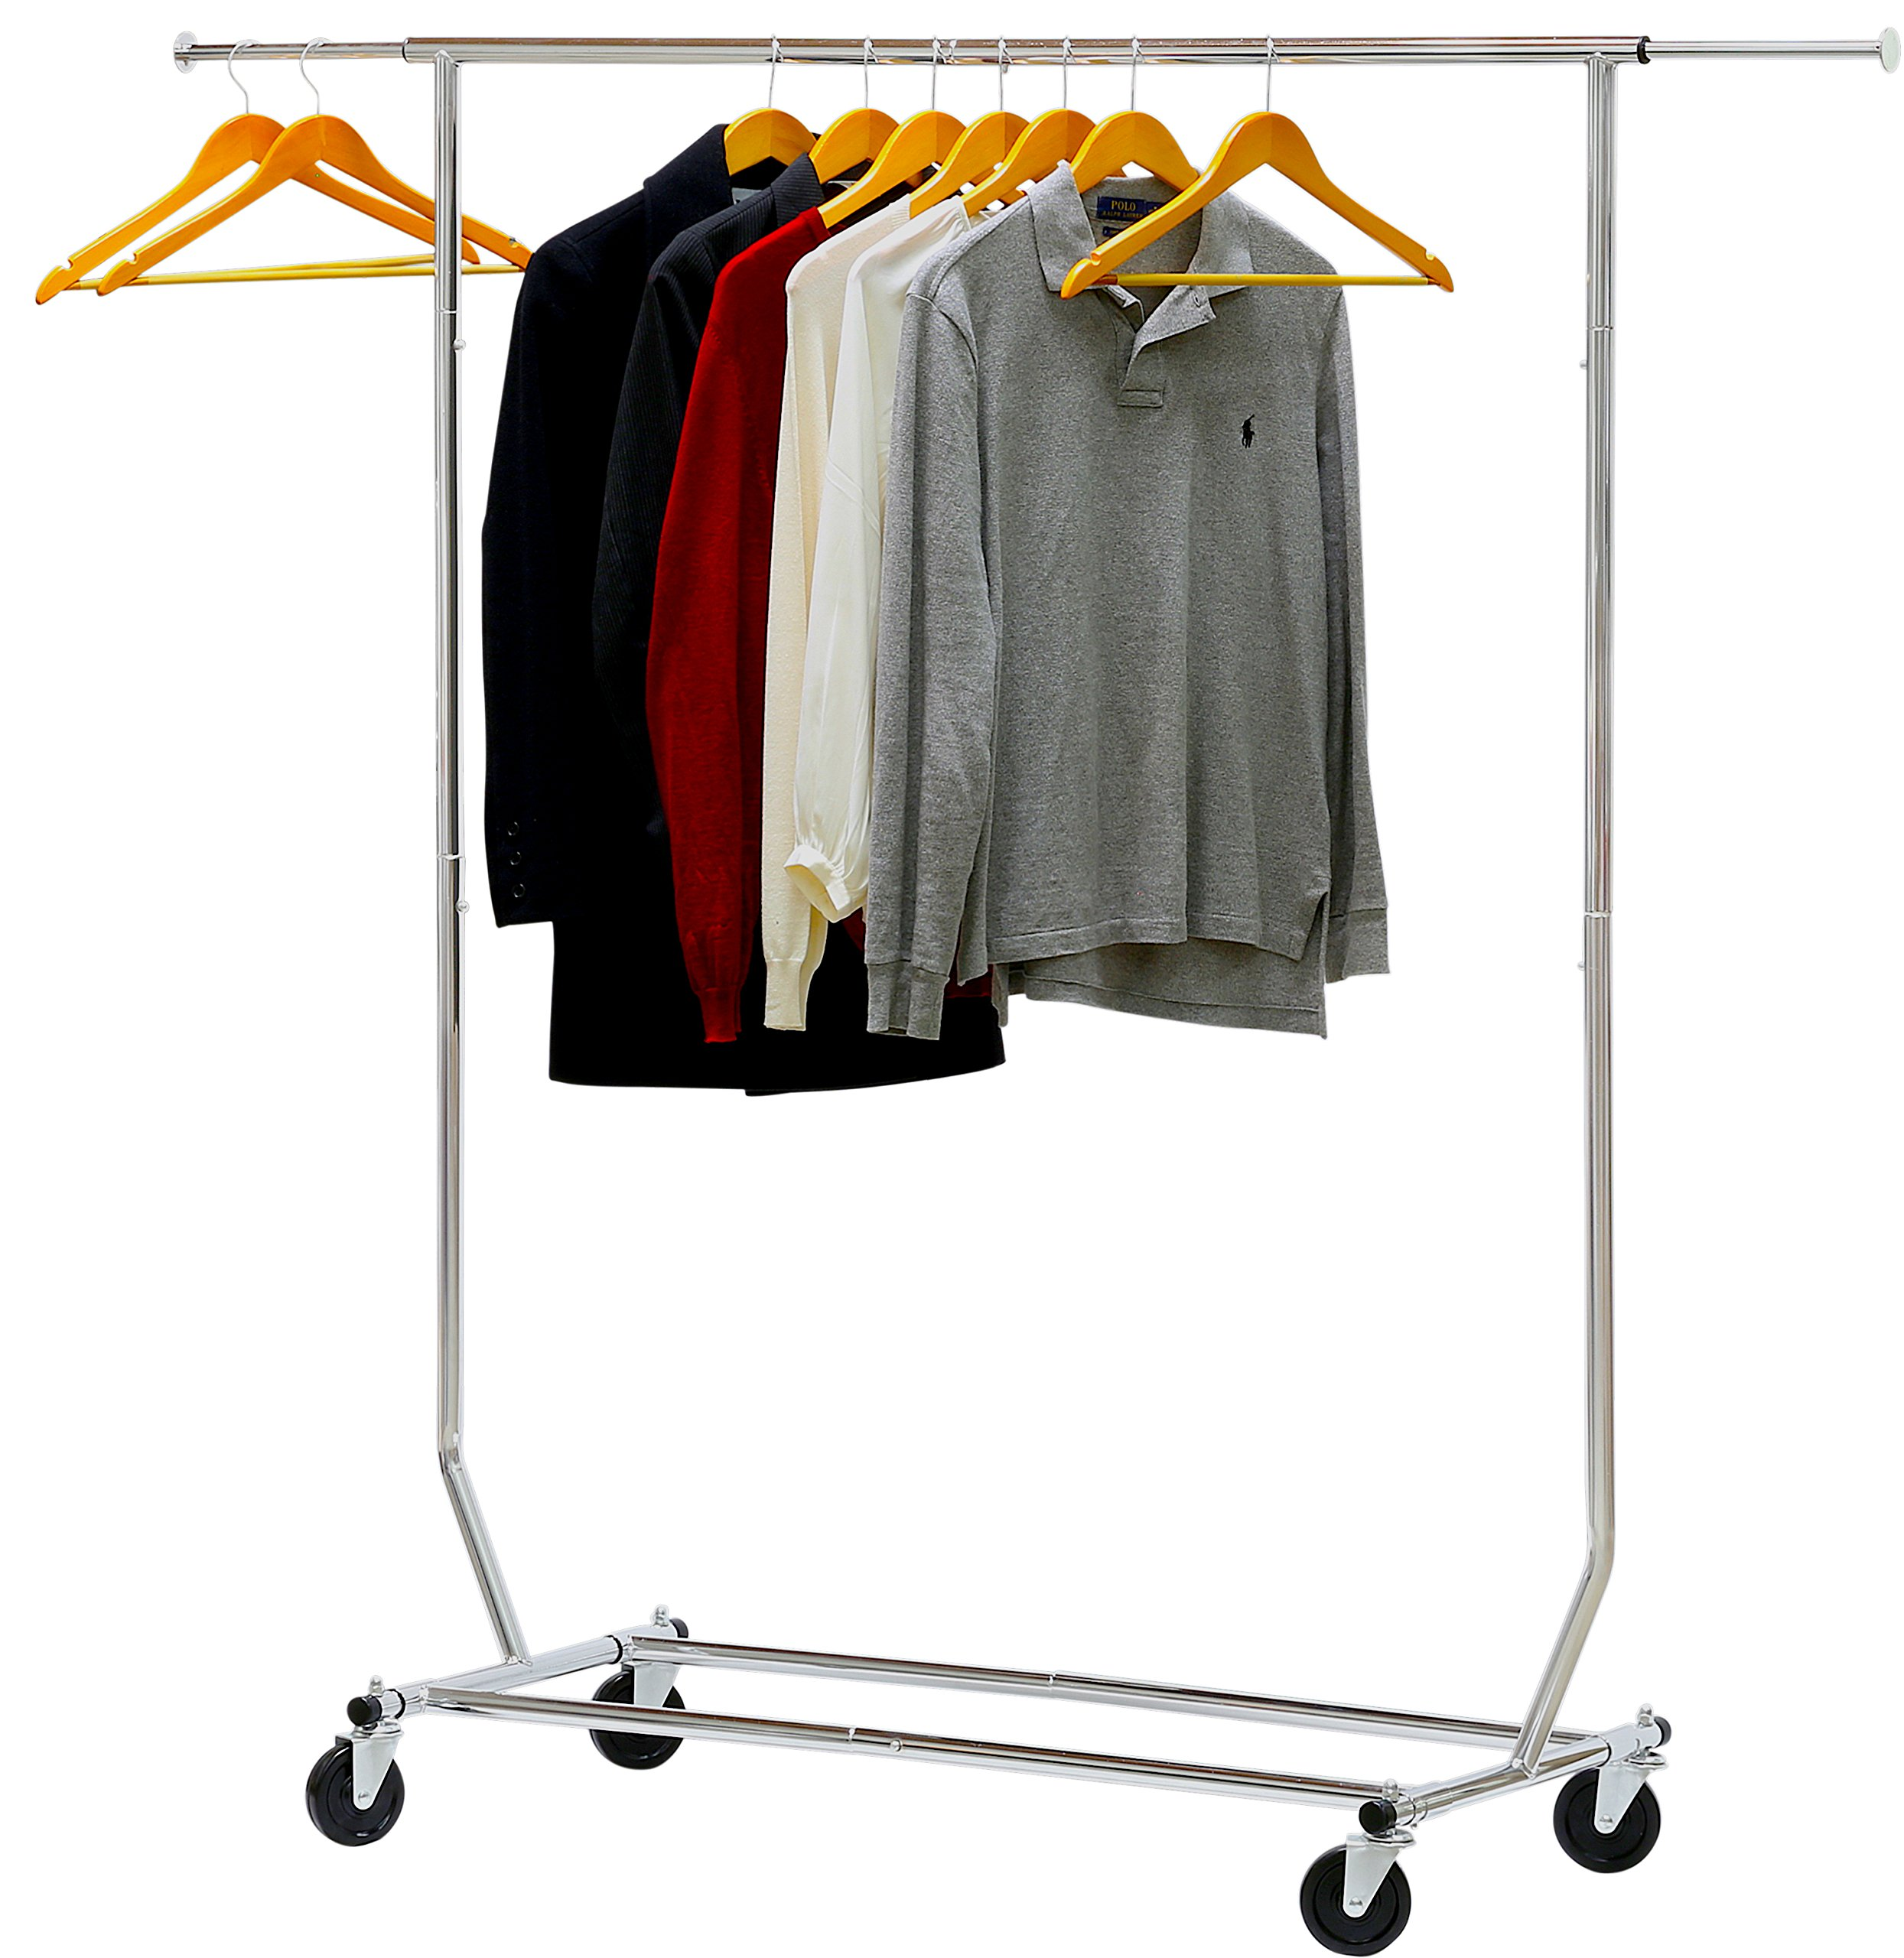 Simple Houseware Supreme Commercial Grade Clothing Garment Rack, Chrome by Simple Houseware